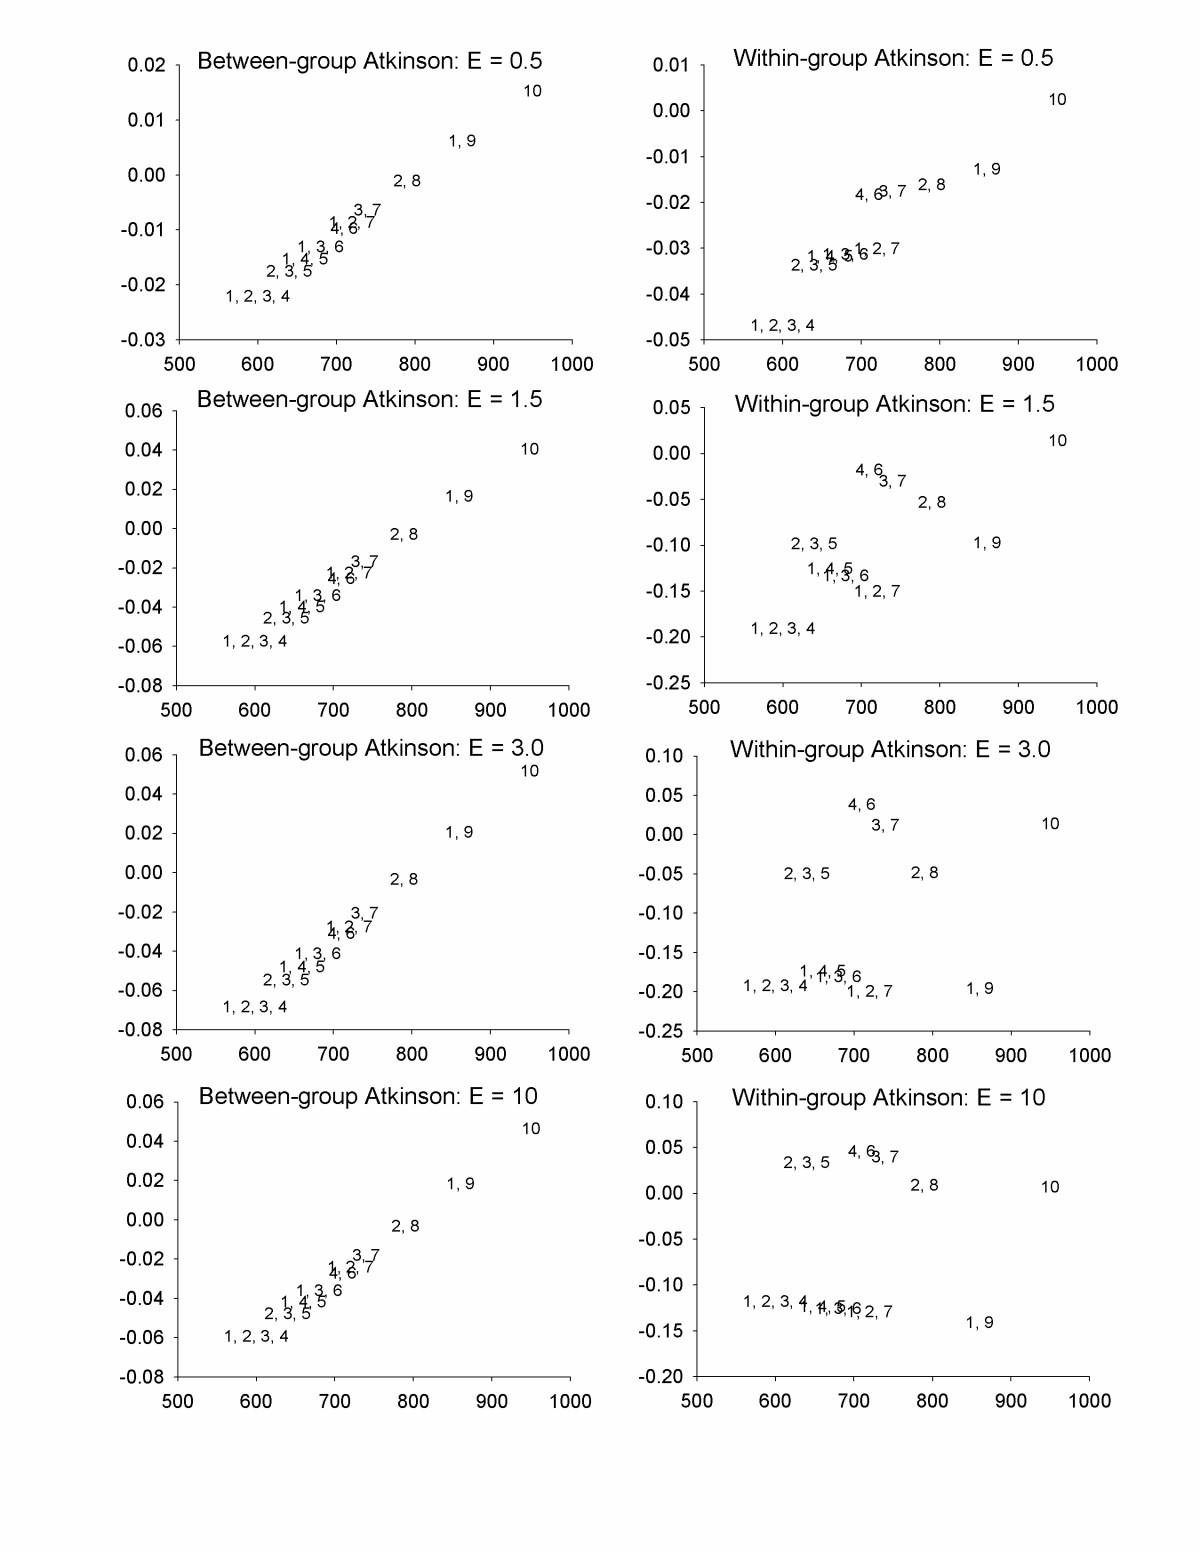 https://static-content.springer.com/image/art%3A10.1186%2F1475-9276-5-2/MediaObjects/12939_2004_Article_40_Fig2_HTML.jpg